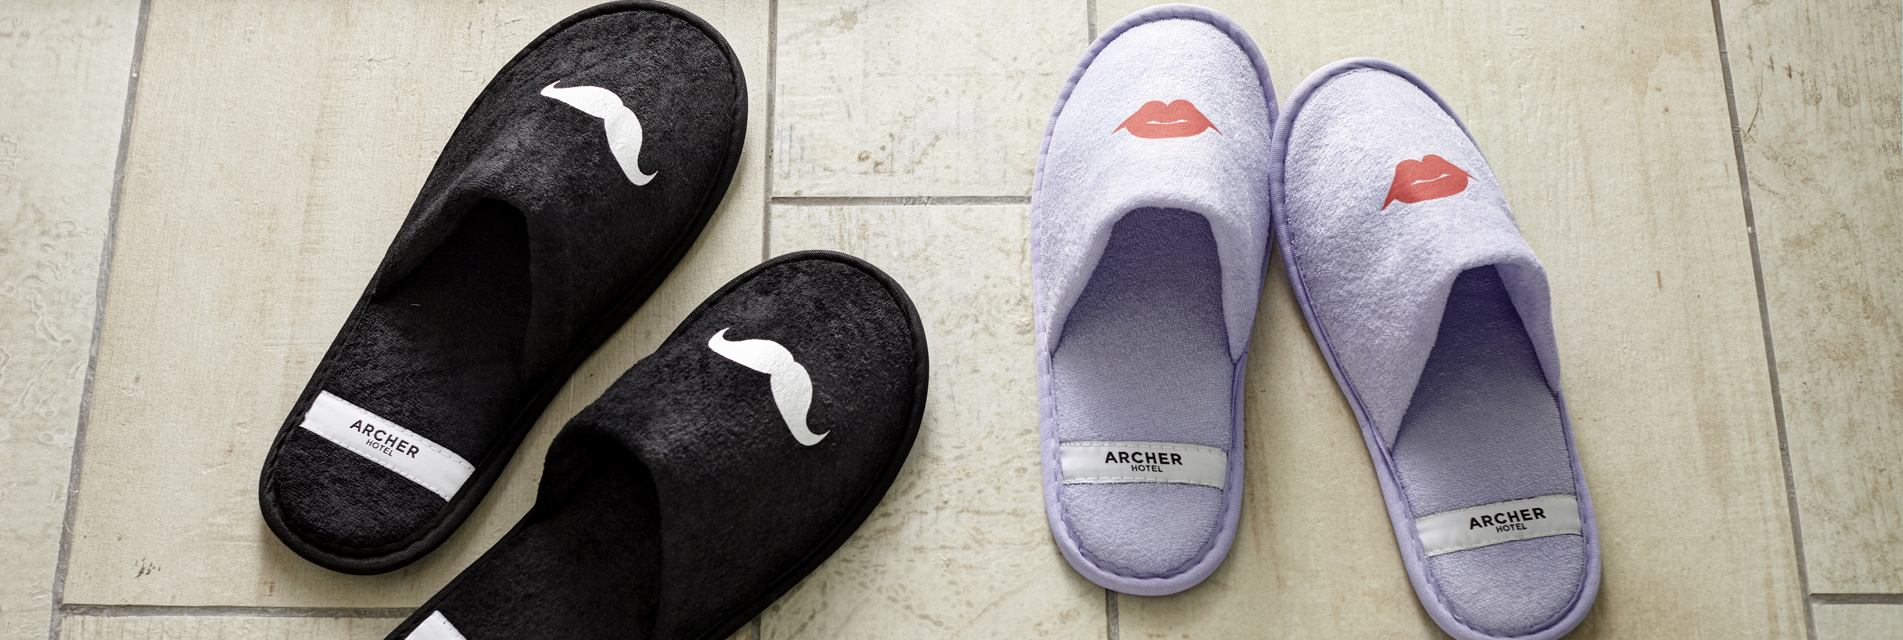 Baby Hotel Slippers 7 Fun Facts About Archer Archer Hotel Blog